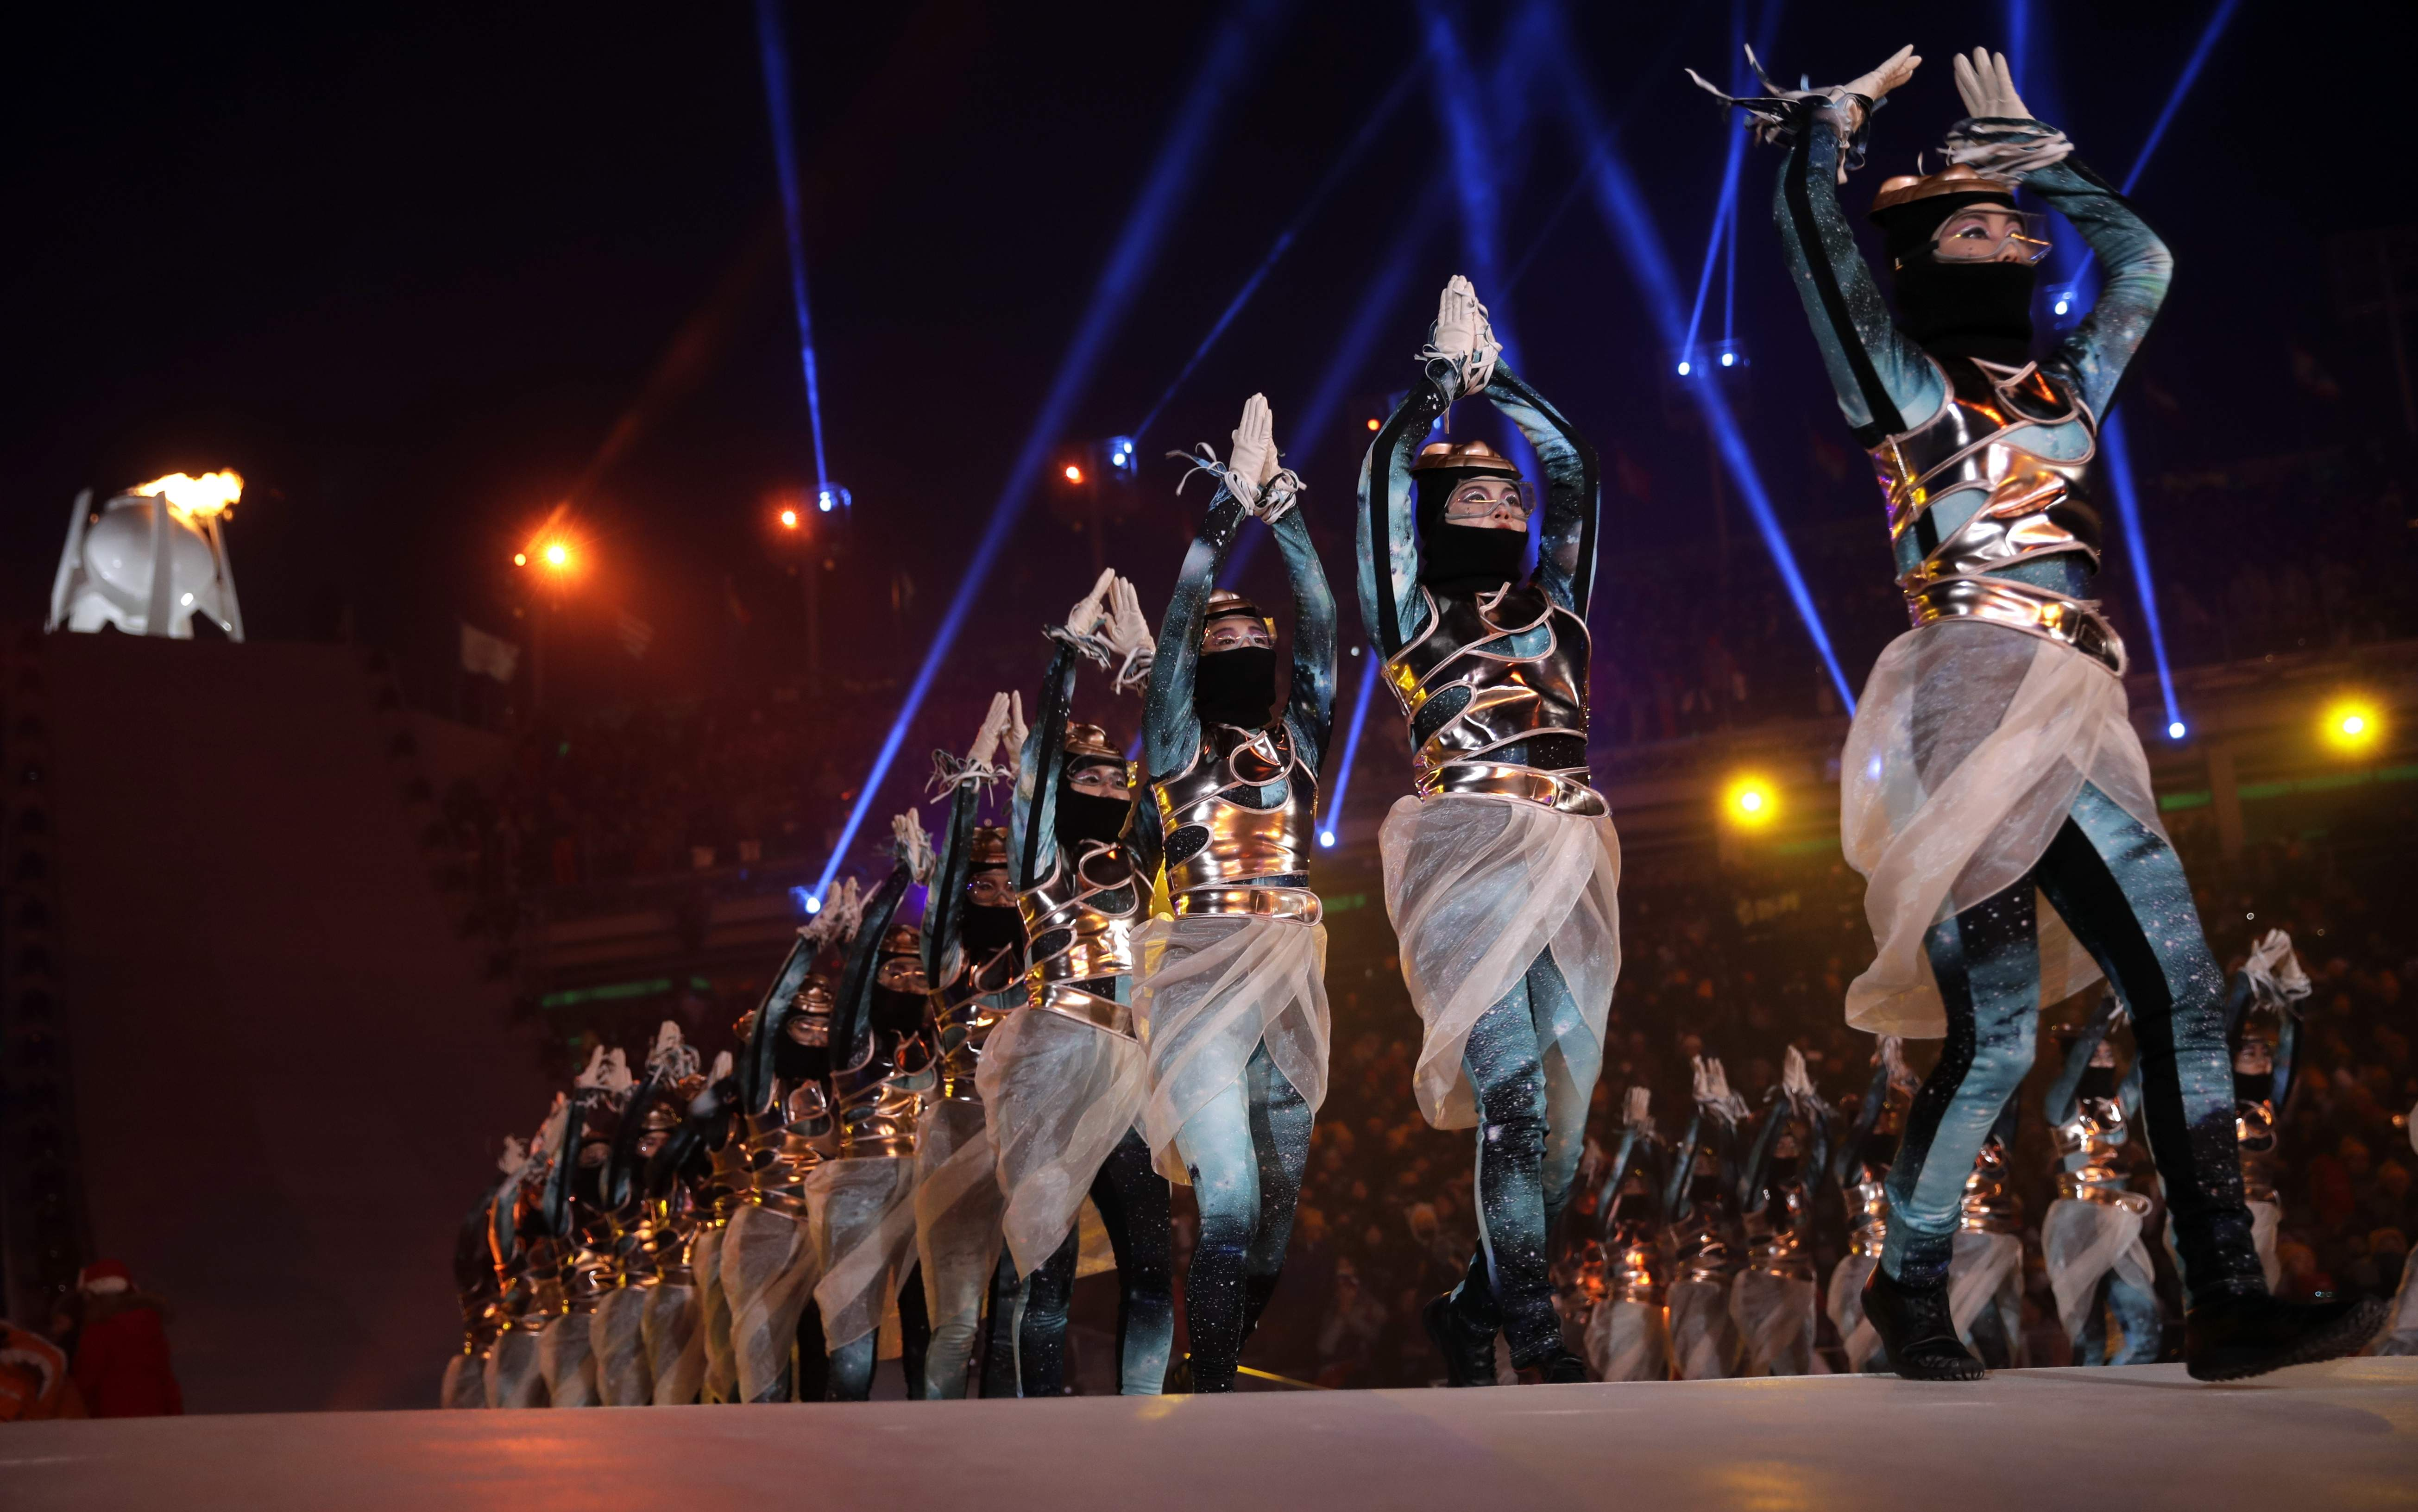 Dancers perform at the end of the opening ceremony of the 2018 Winter Olympics in Pyeongchang, South Korea, Friday, Feb. 9, 2018. (AP Photo/Vadim Ghirda)